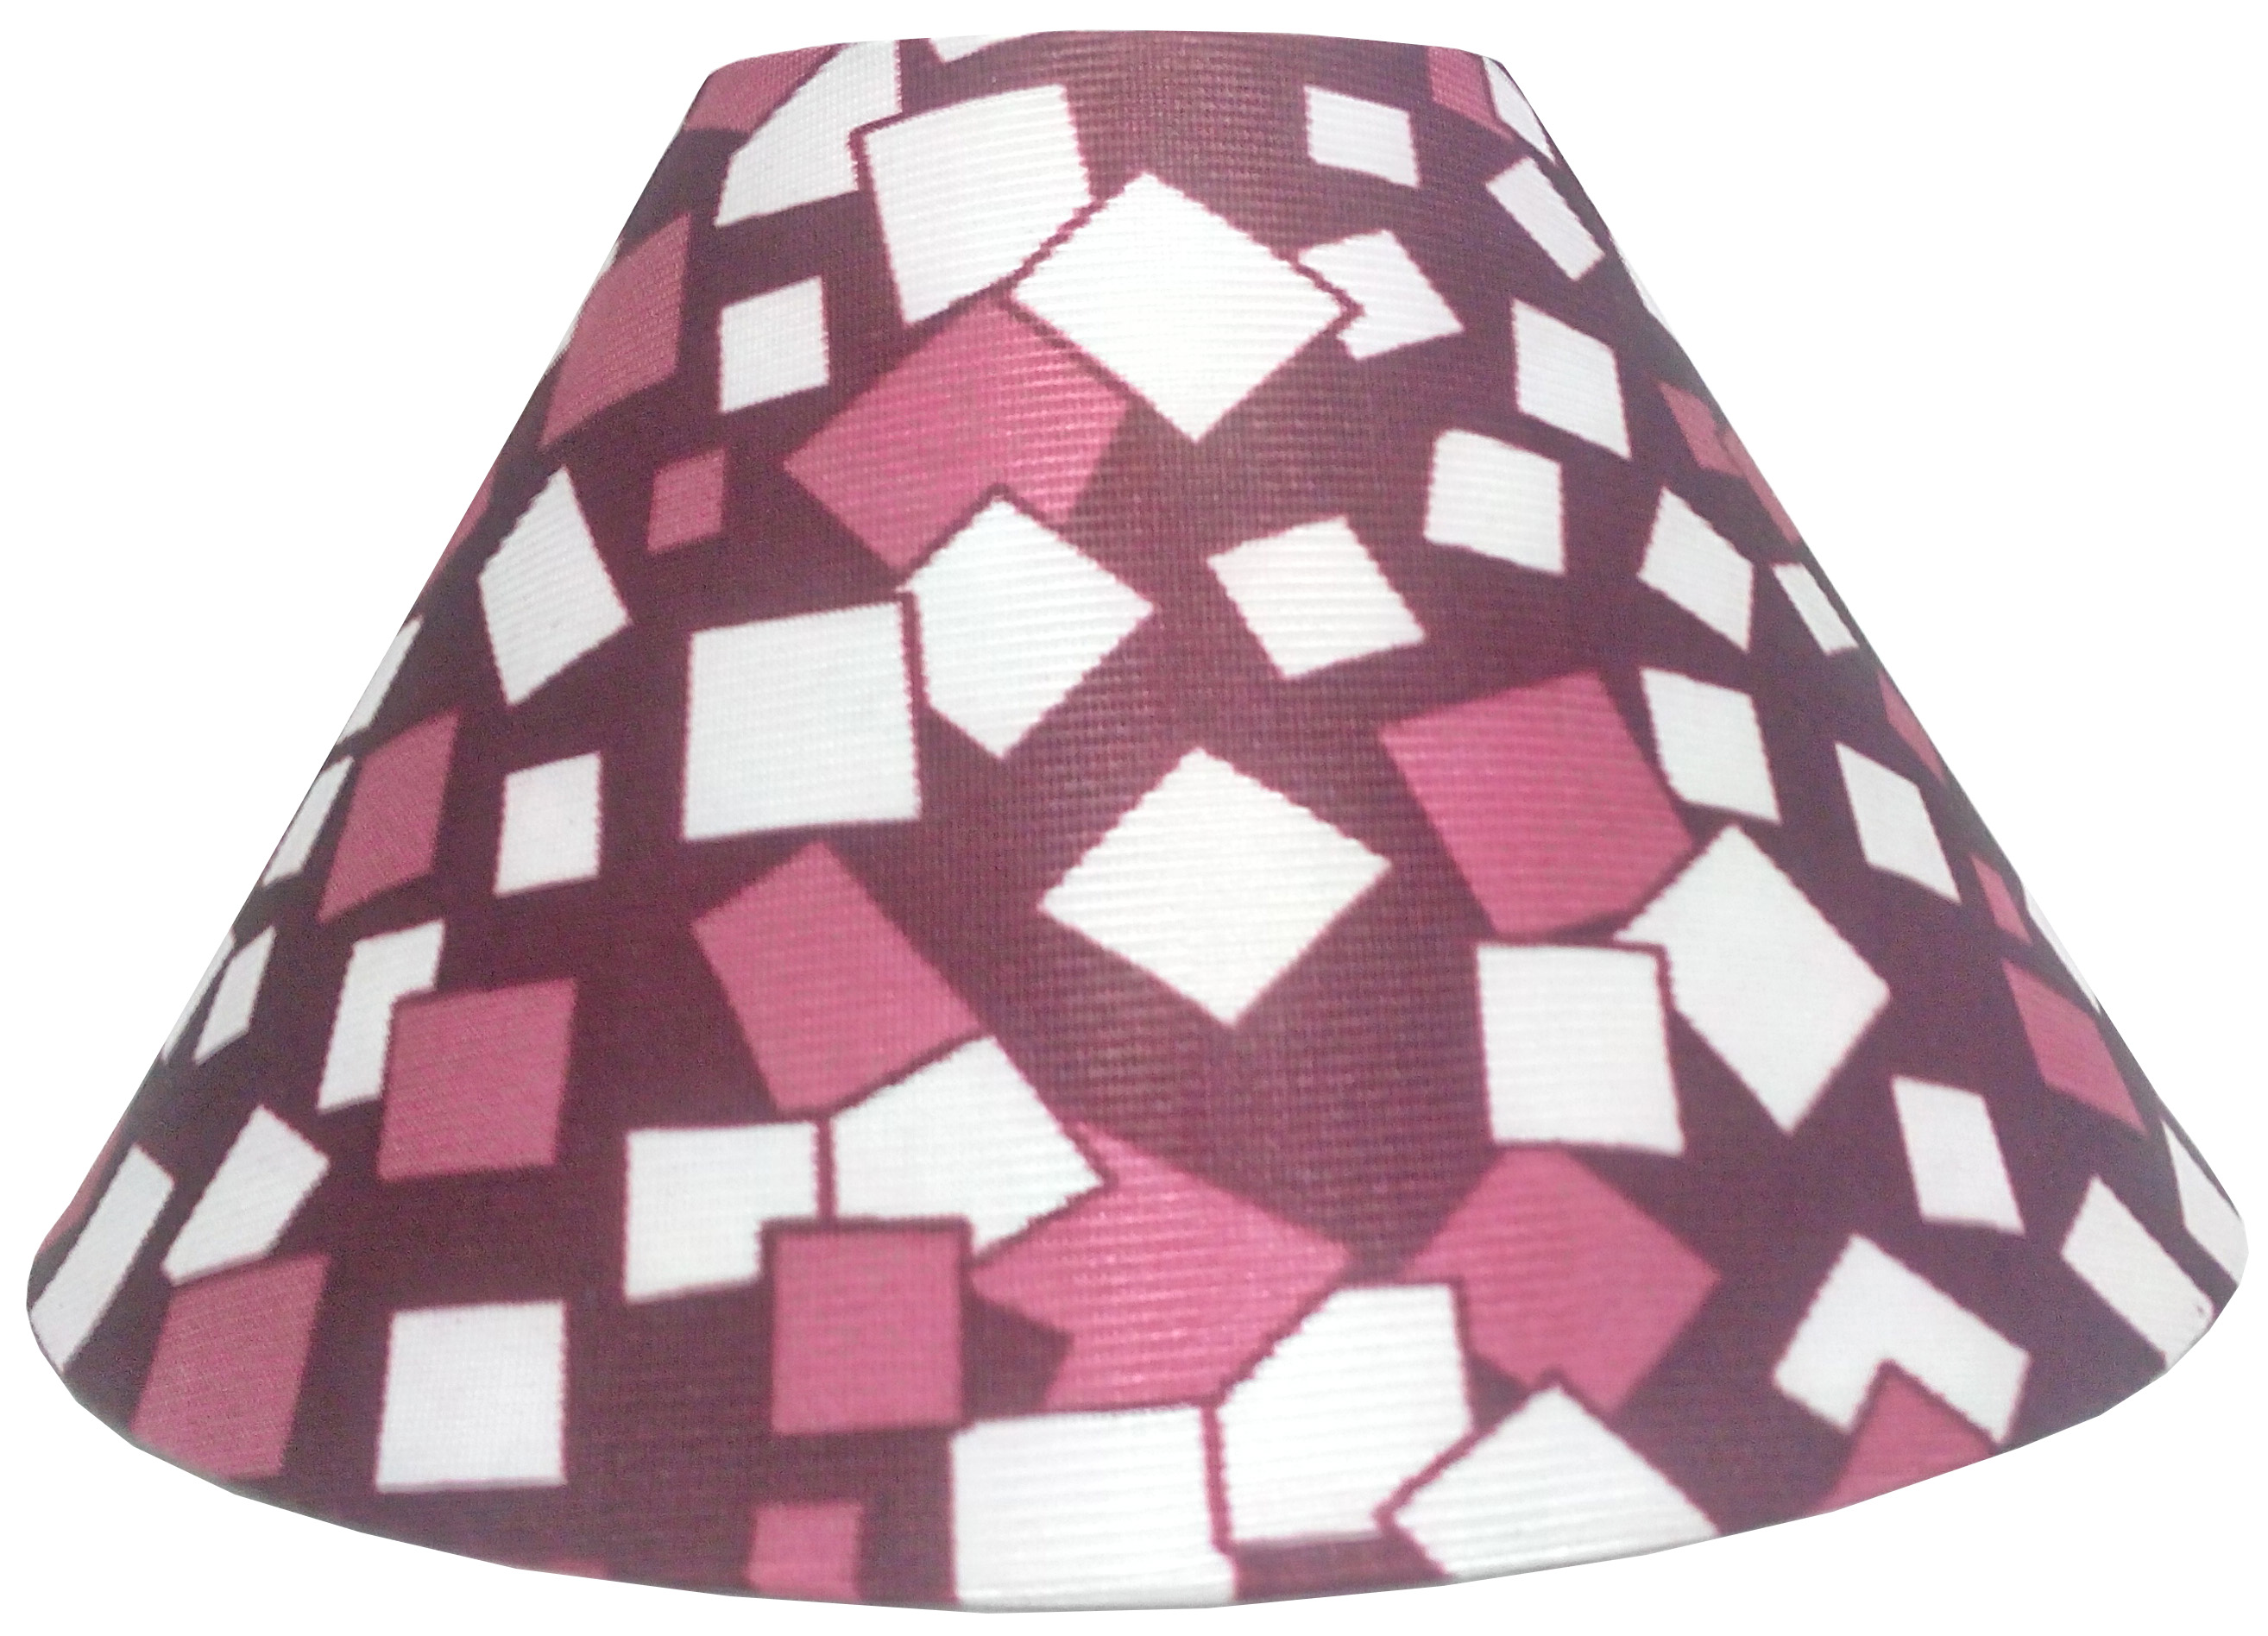 RDC 10 Inches Round Maroon Checks Designer Lamp Shade for Table Lamp